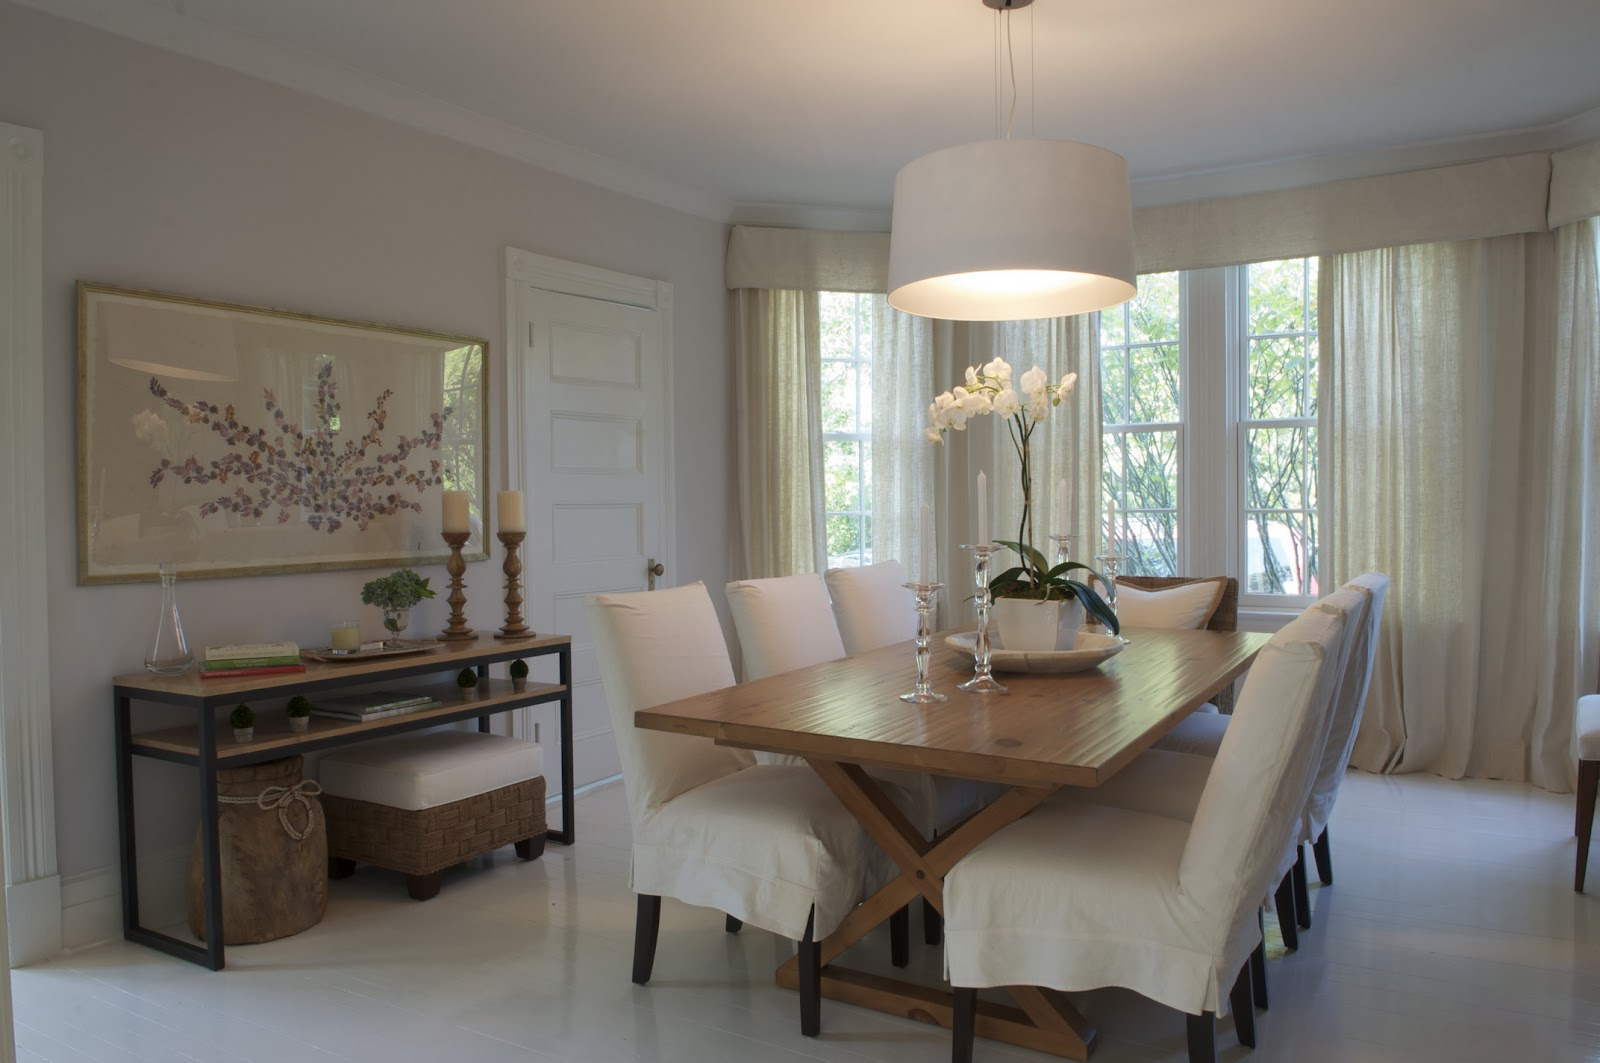 Sheer Curtains In This Dining Room Soften The Strict Lines Of Trestle Table And Iron Based Console Another Hand Made Paper Dried Flower